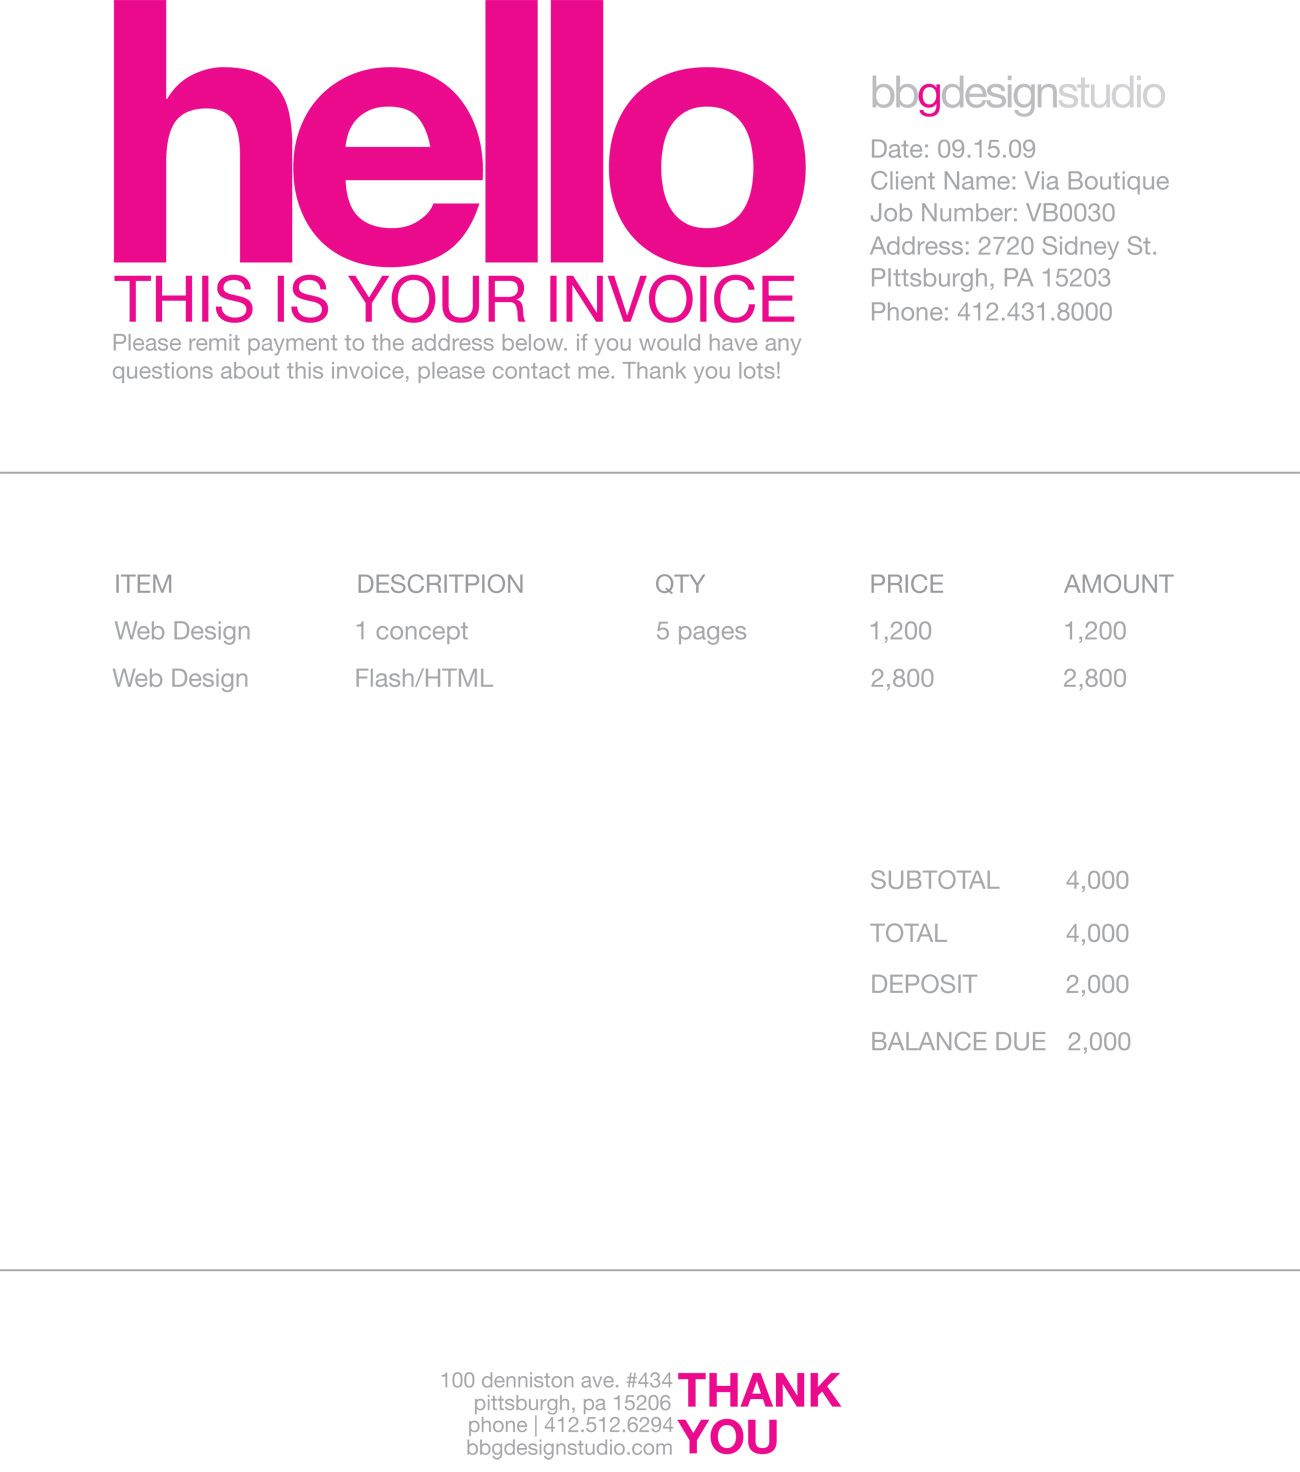 Theologygeekblogus  Prepossessing  Images About Invoice Design On Pinterest With Interesting Free Invoices Online Form Besides Cheap Invoicing Software Furthermore Sample Of An Invoice Template With Agreeable Example Of Invoices Templates Also Invoice Generation Software In Addition Time Tracking Invoice And What Needs To Be On An Invoice As Well As Preparing An Invoice Additionally Free Invoices Uk From Pinterestcom With Theologygeekblogus  Interesting  Images About Invoice Design On Pinterest With Agreeable Free Invoices Online Form Besides Cheap Invoicing Software Furthermore Sample Of An Invoice Template And Prepossessing Example Of Invoices Templates Also Invoice Generation Software In Addition Time Tracking Invoice From Pinterestcom